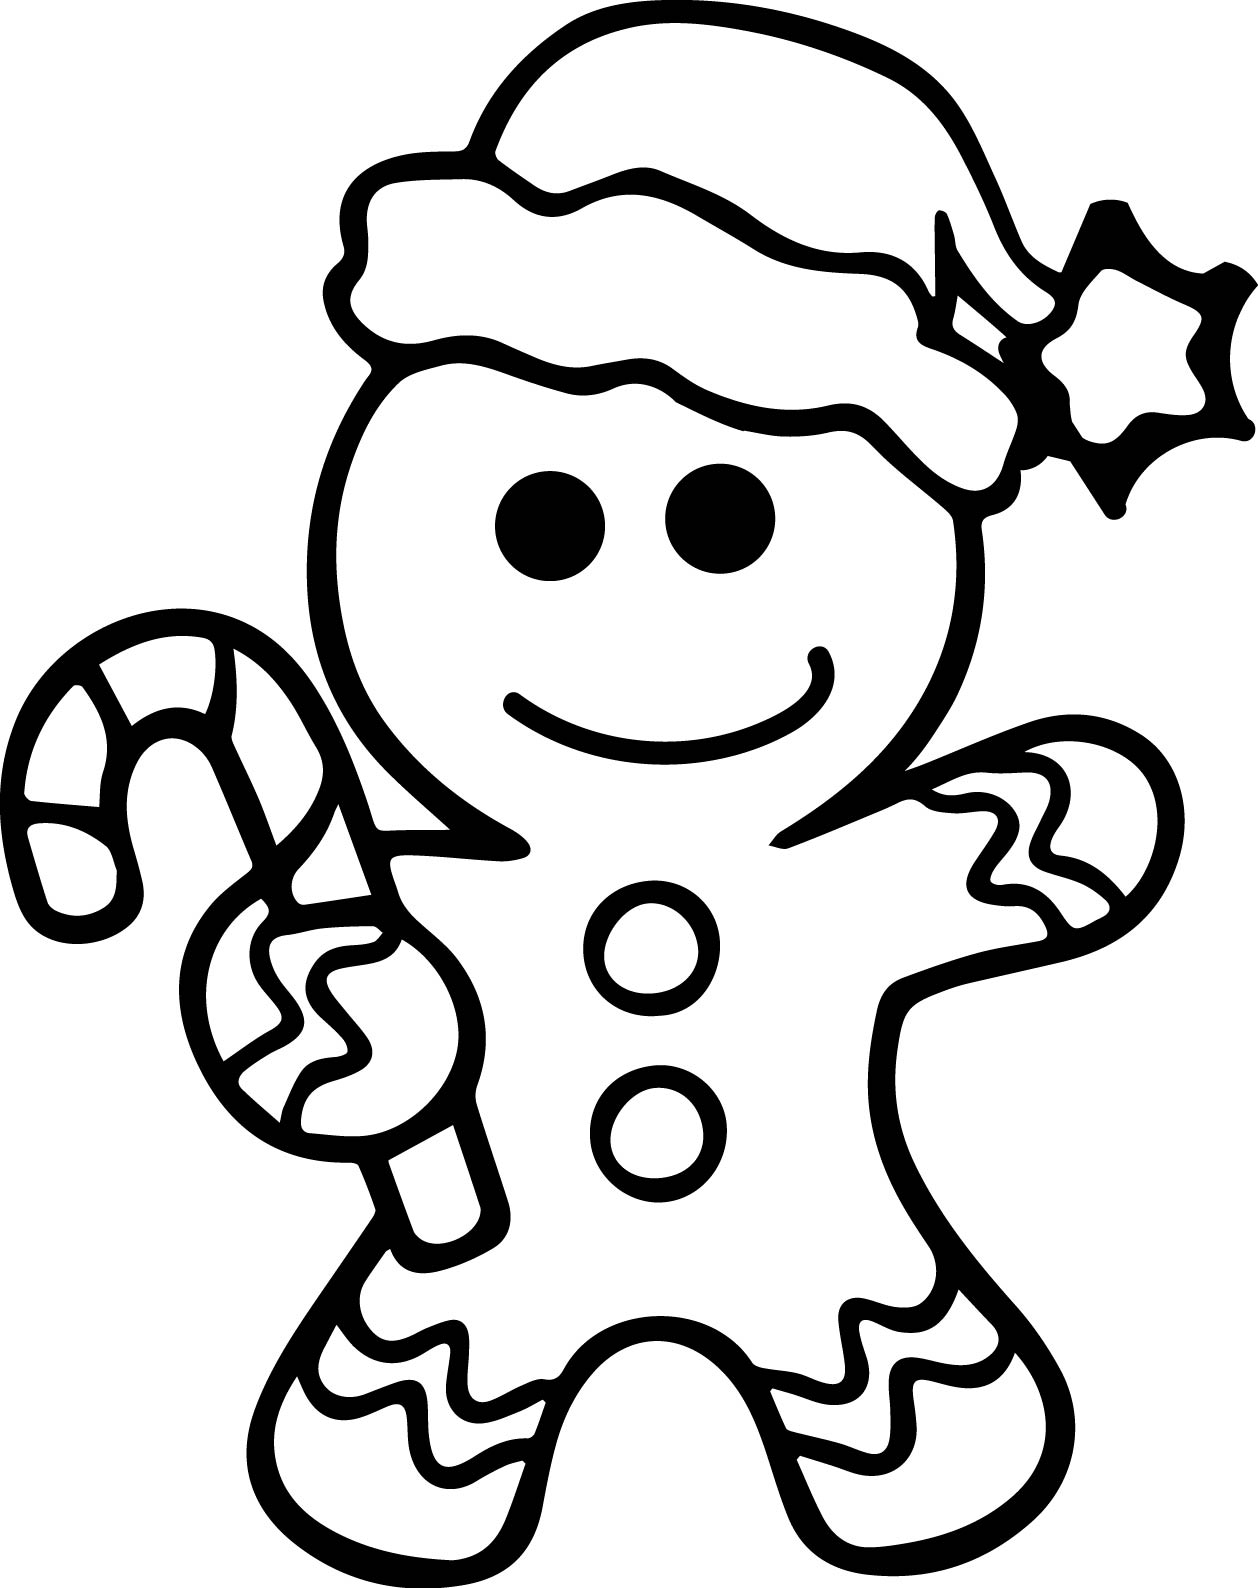 1258x1588 Christmas Coloring Pages For Adults Gingerbread Men Images